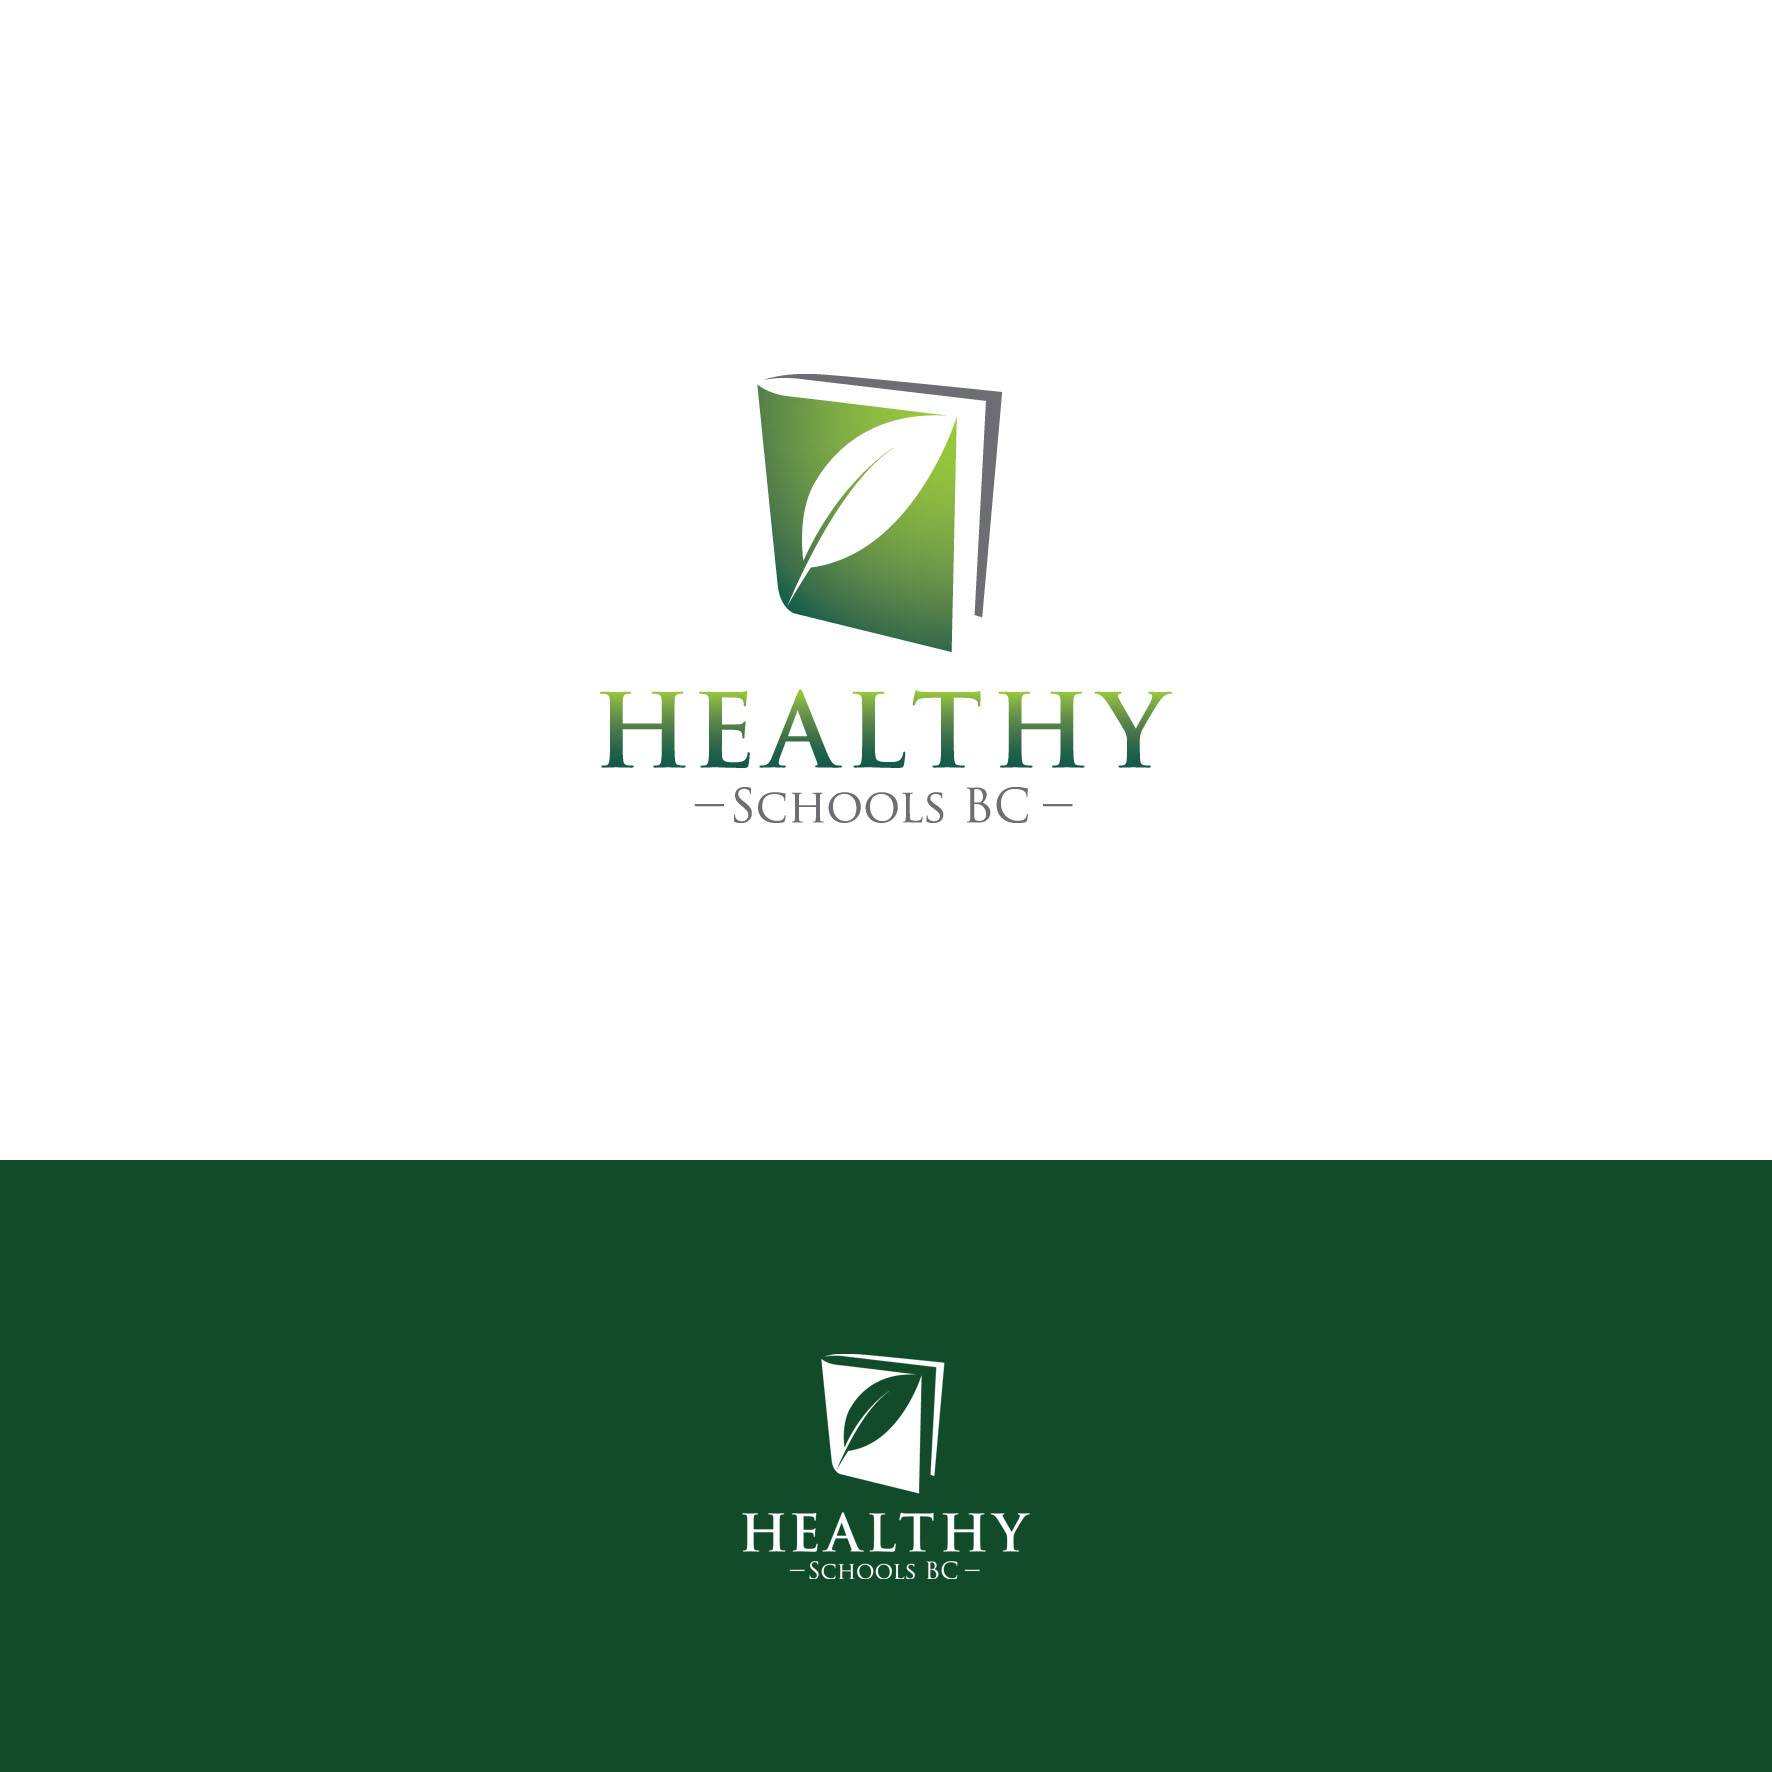 Logo Design by tanganpanas - Entry No. 177 in the Logo Design Contest SImple, Creative and Clean Logo Design for Healthy Schools British Columbia, Canada.